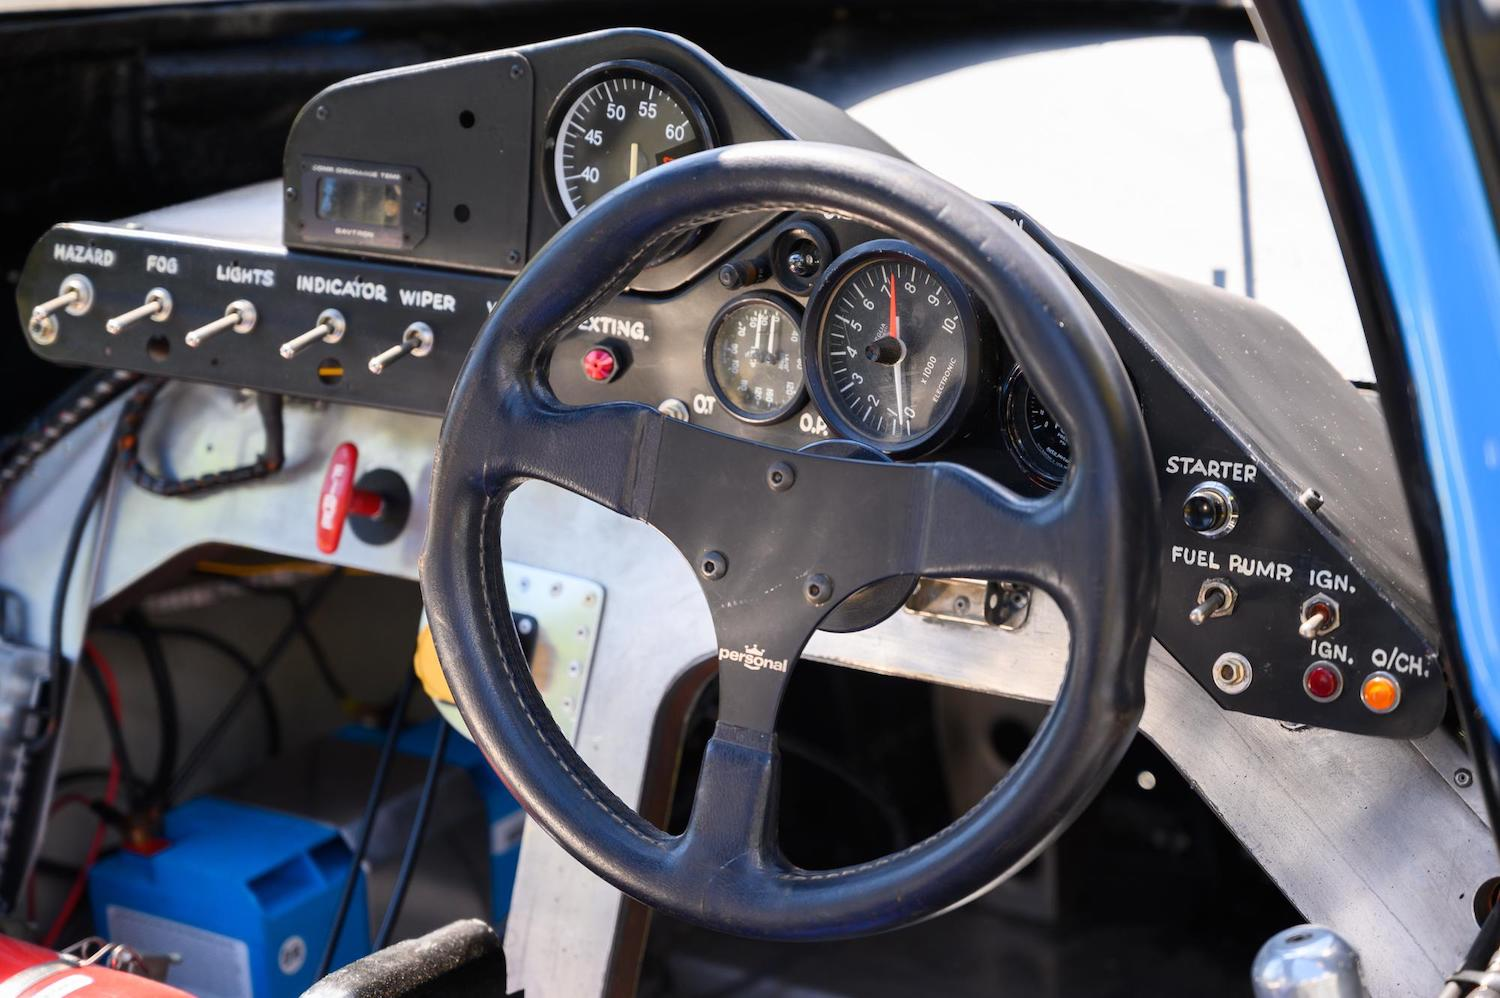 1983 Grid S2 Group C Prototype dash detail